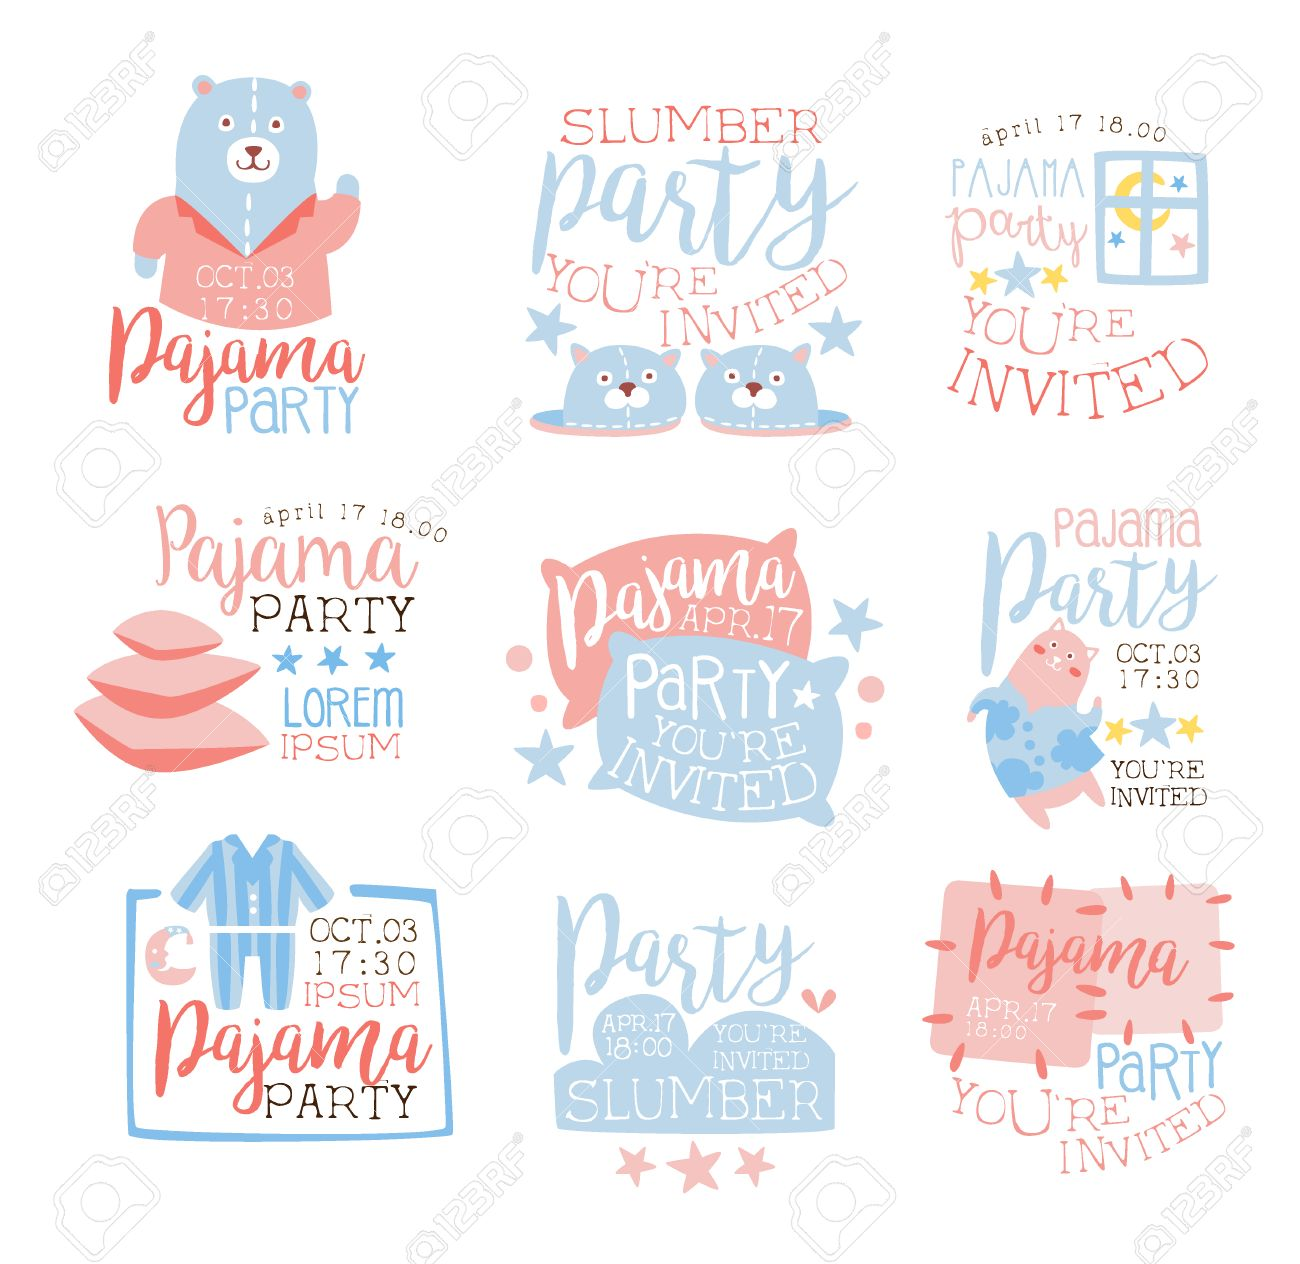 Pink And Blue Girly Pajama Party Invitation Templates Set Inviting ...